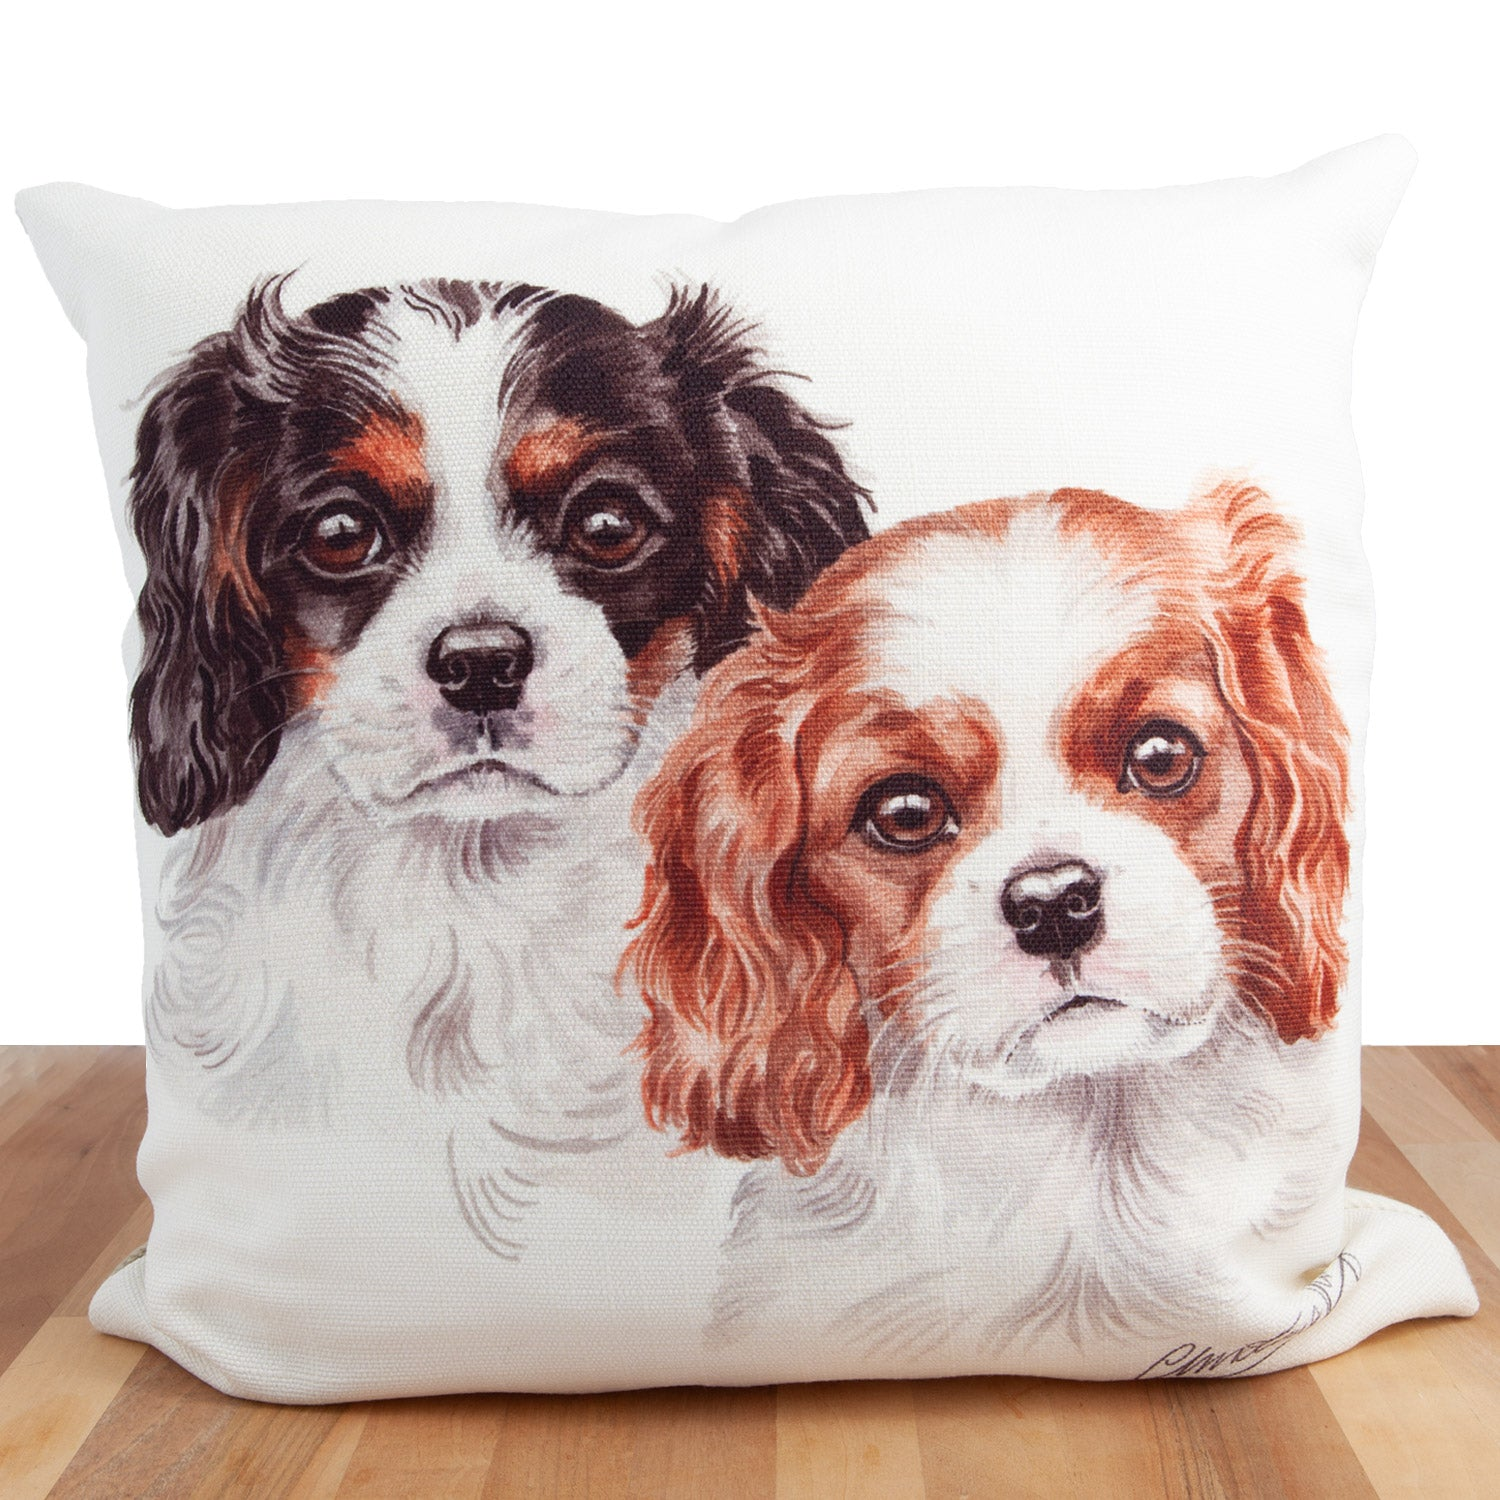 Dog Lover Gifts available at Dog Krazy Gifts. Cavalier King Charles Cushion, part of our Christine Varley collection – available at www.dogkrazygifts.co.uk